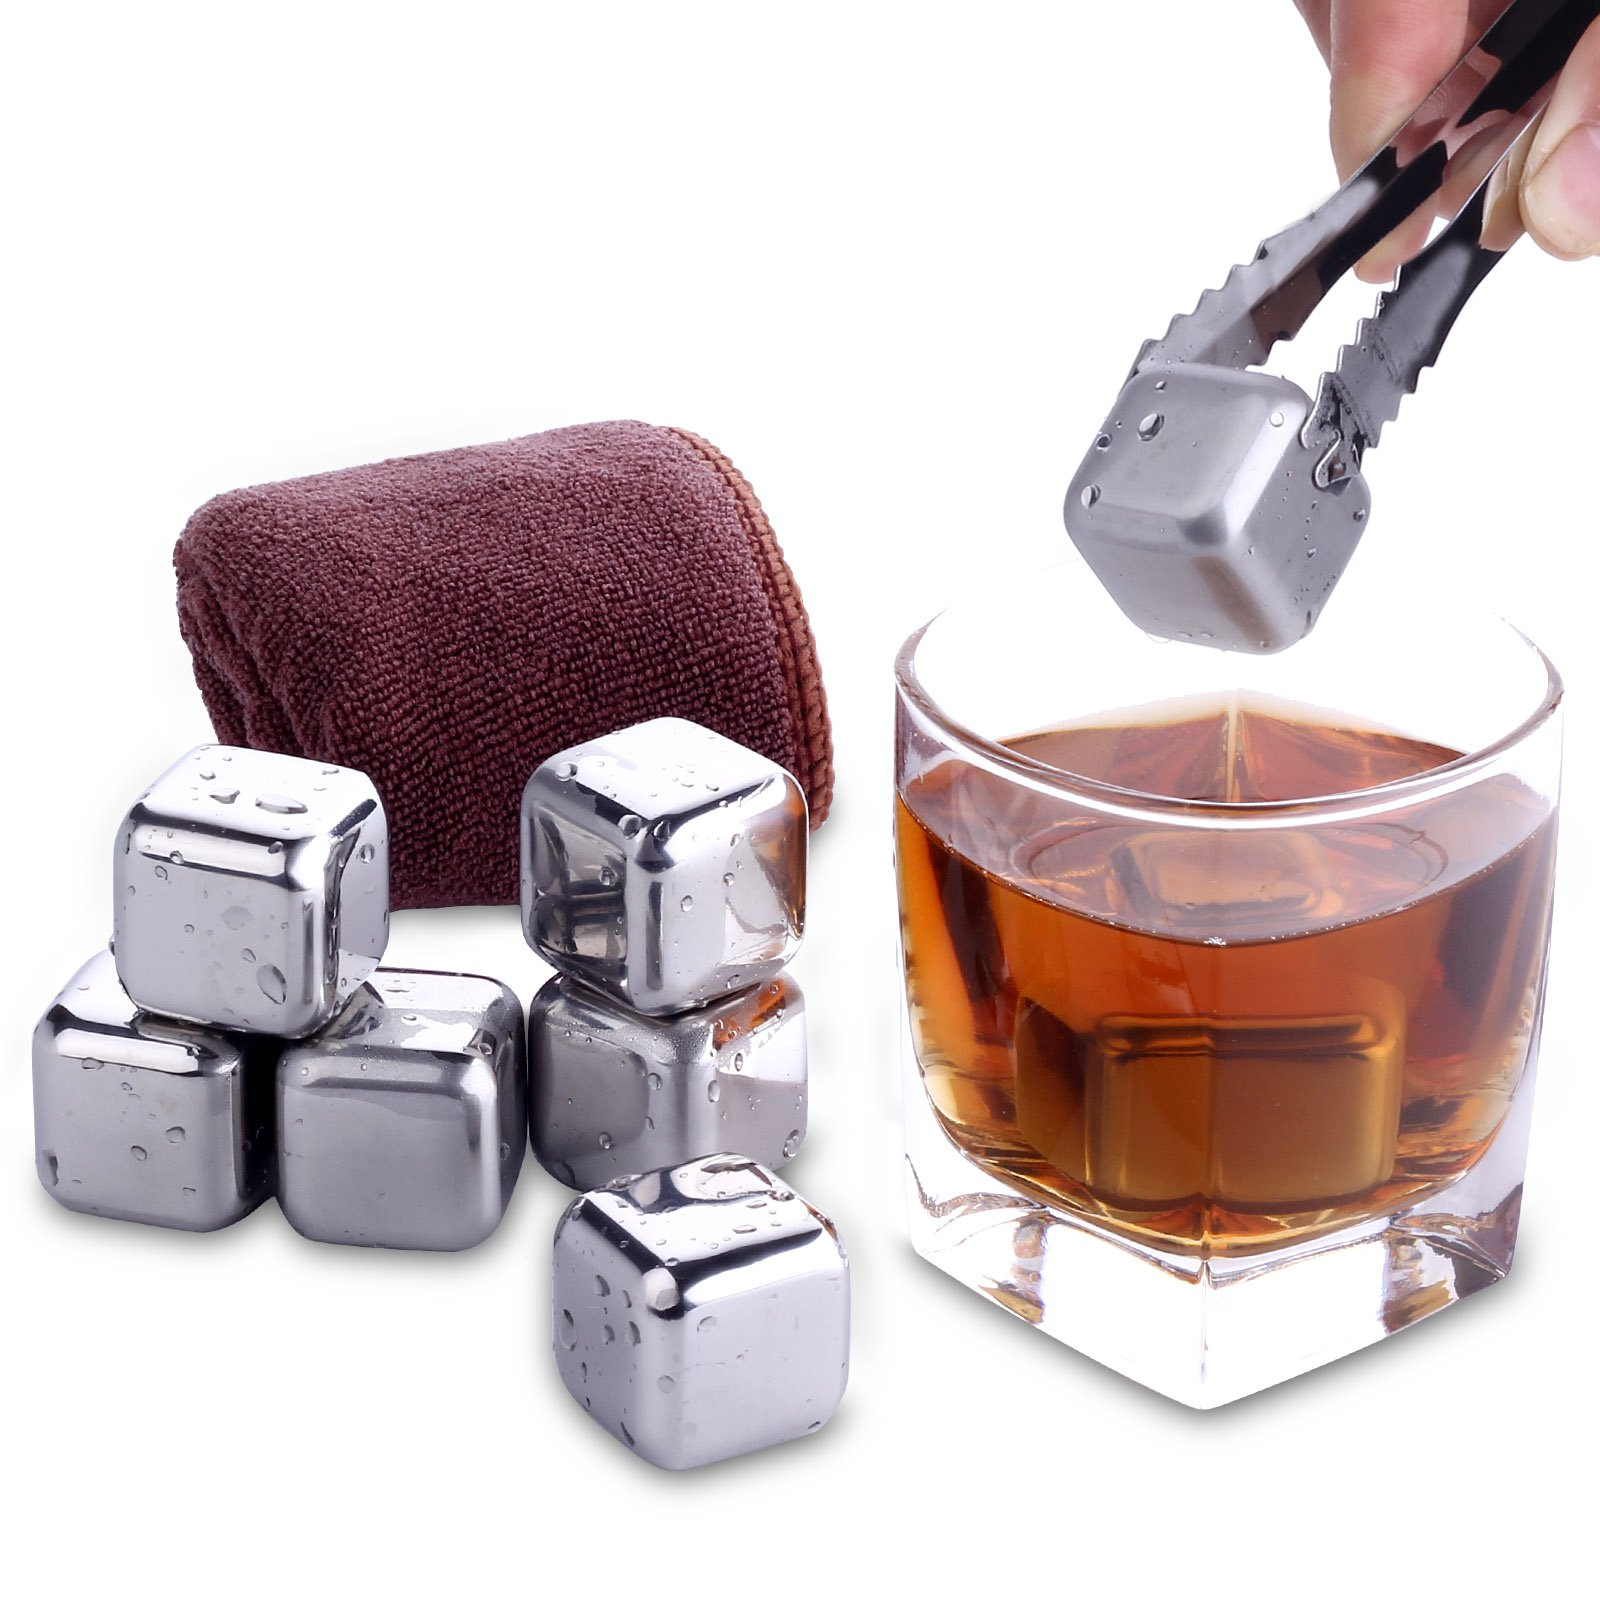 NZACE Reusable Whiskey Stones Ice Cube, 8 Piece Gift Set Metal Stainless Steel Scotch Whiskey Chilling Stones for whiskey, vodka, liqueurs, white wine and Drink with Nonslip Tongs and Ice Cube Tray